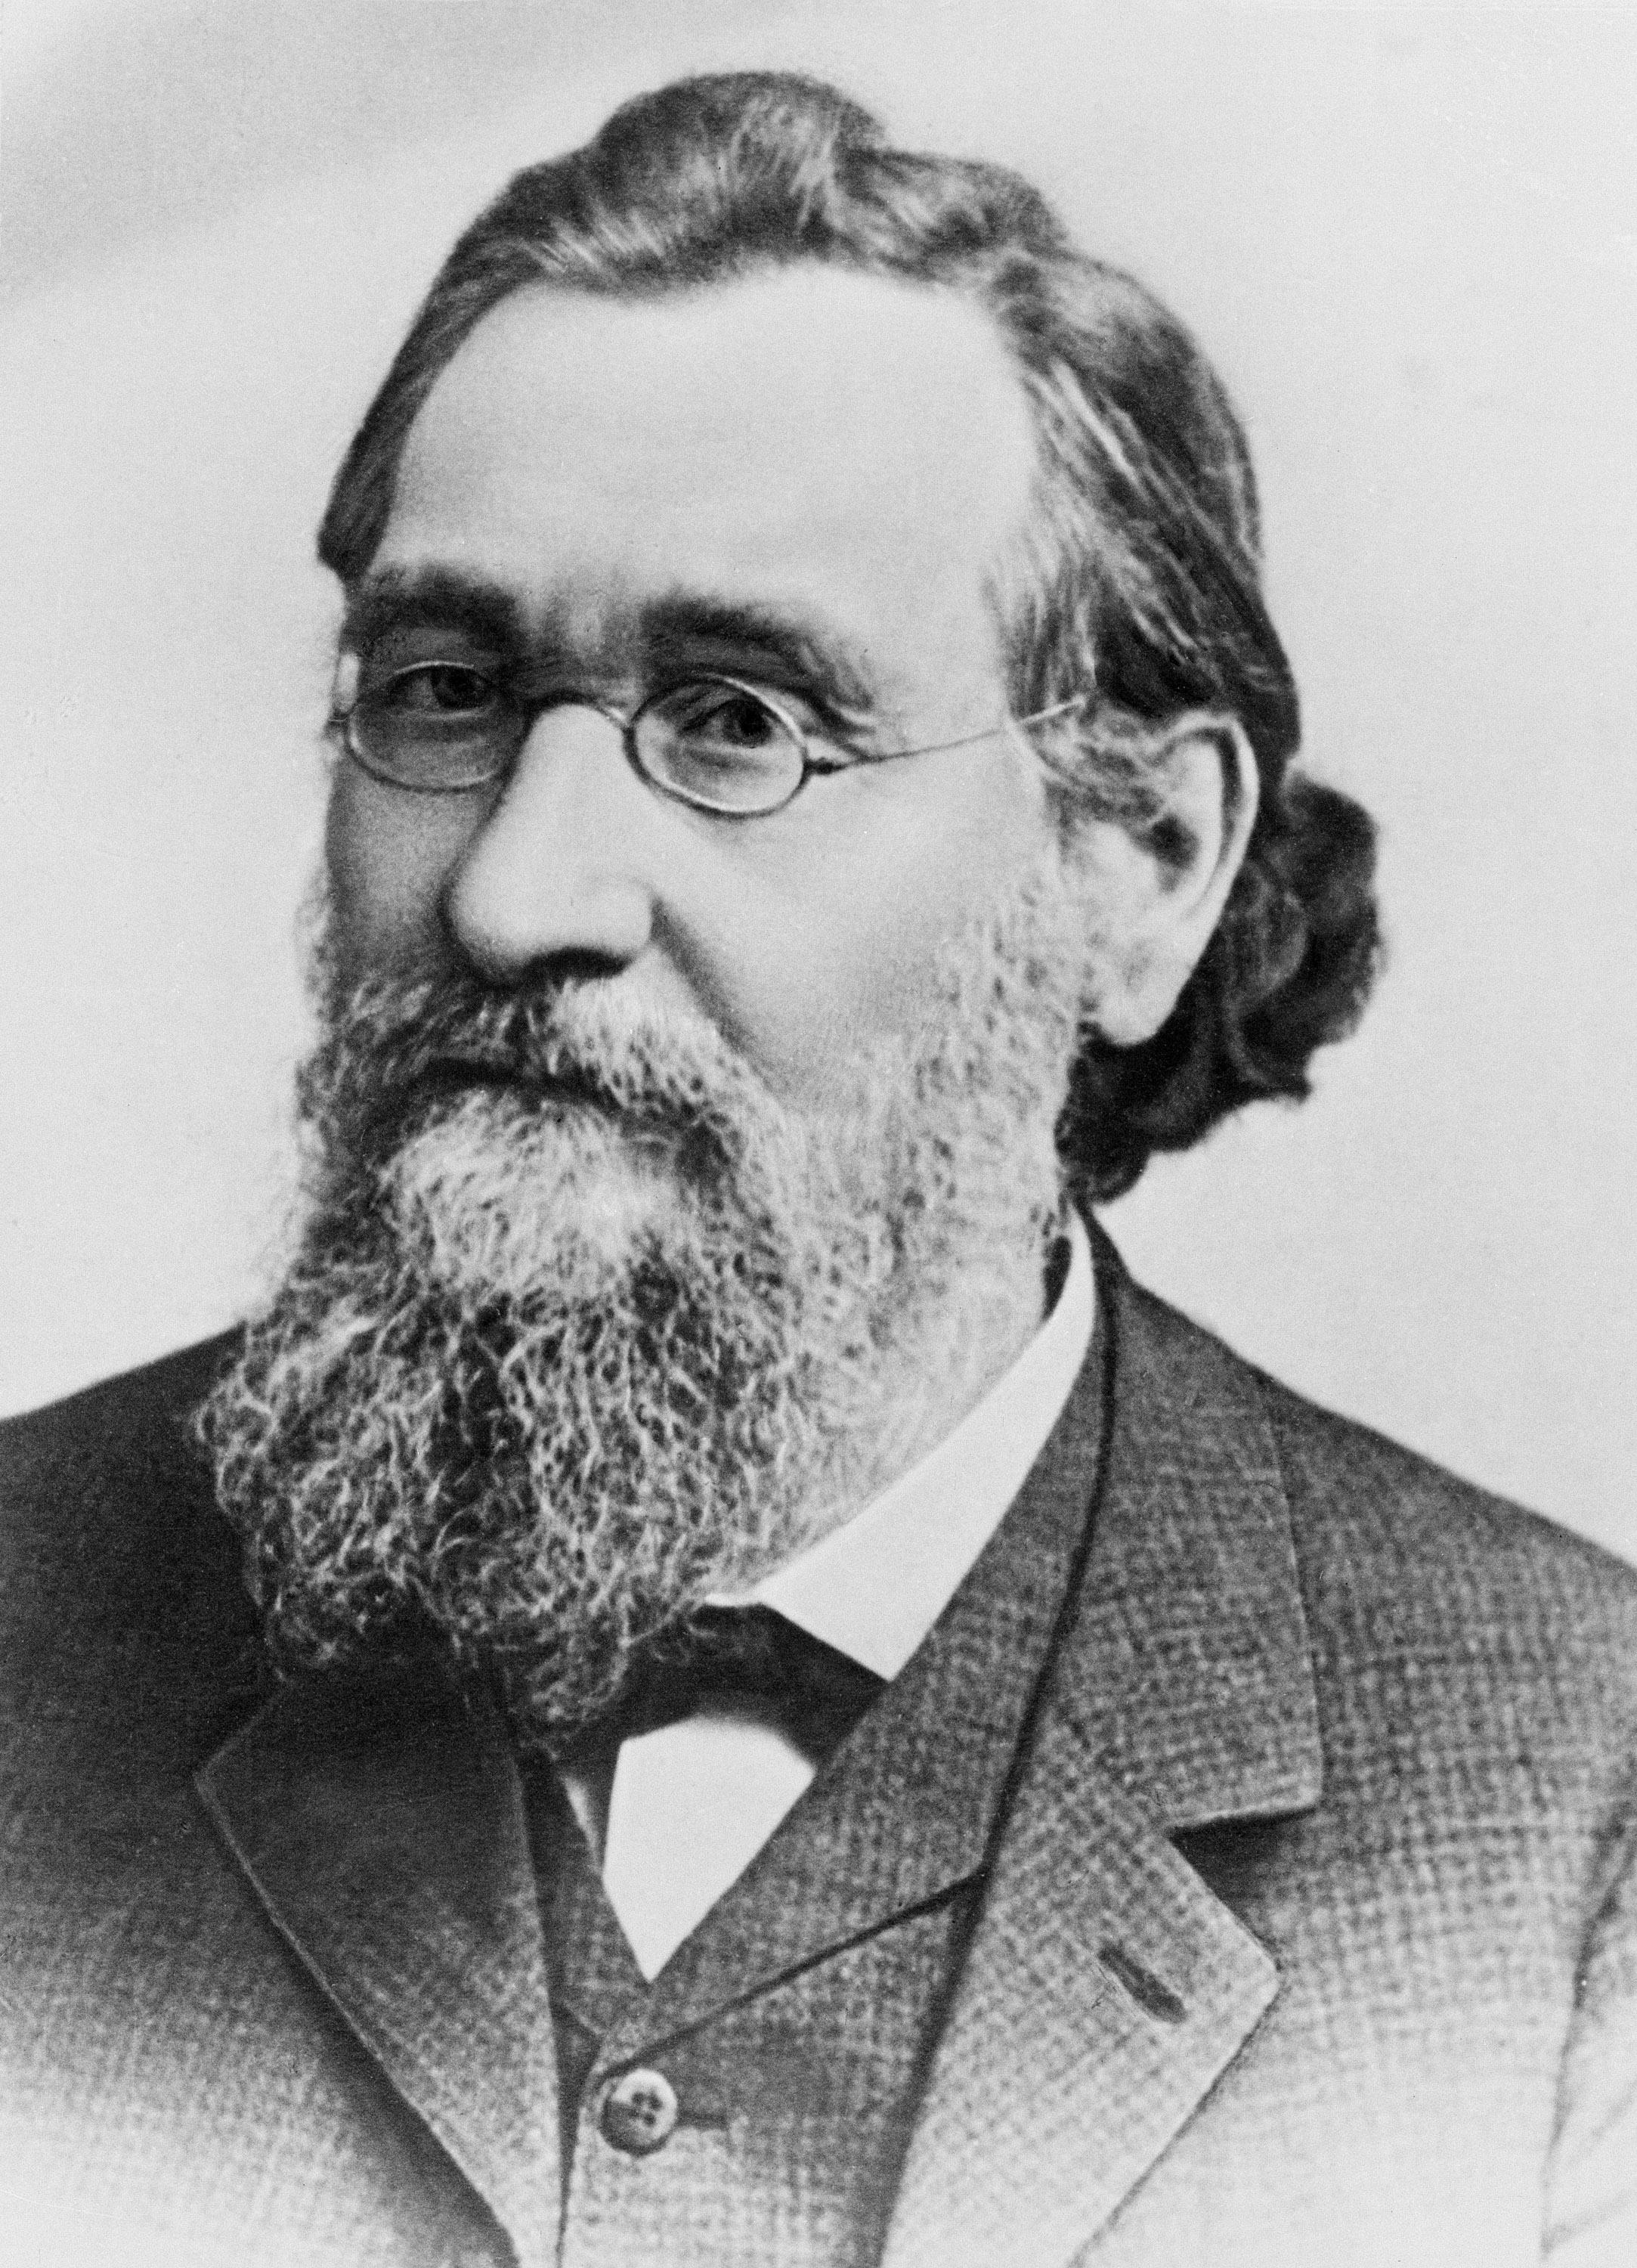 Ilya Ilyich Mechnikov also known as Elie Metchnikoff, May 16, 1845, Ukraine – July 16, 1916, Paris was a Russian microbiologist best remembered for his pioneering research into the immune system. Mechnikov received the Nobel Prize in Medicine in 1908, for